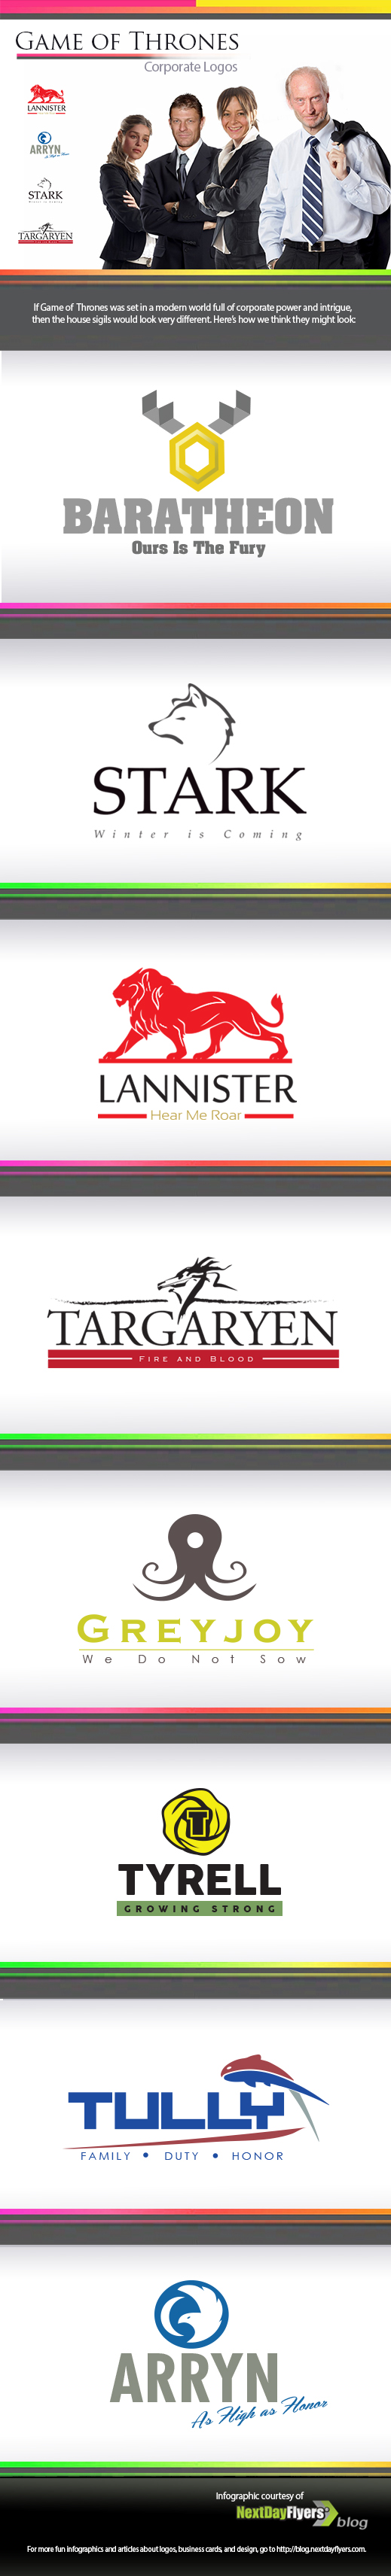 game-of-thrones-house-logos